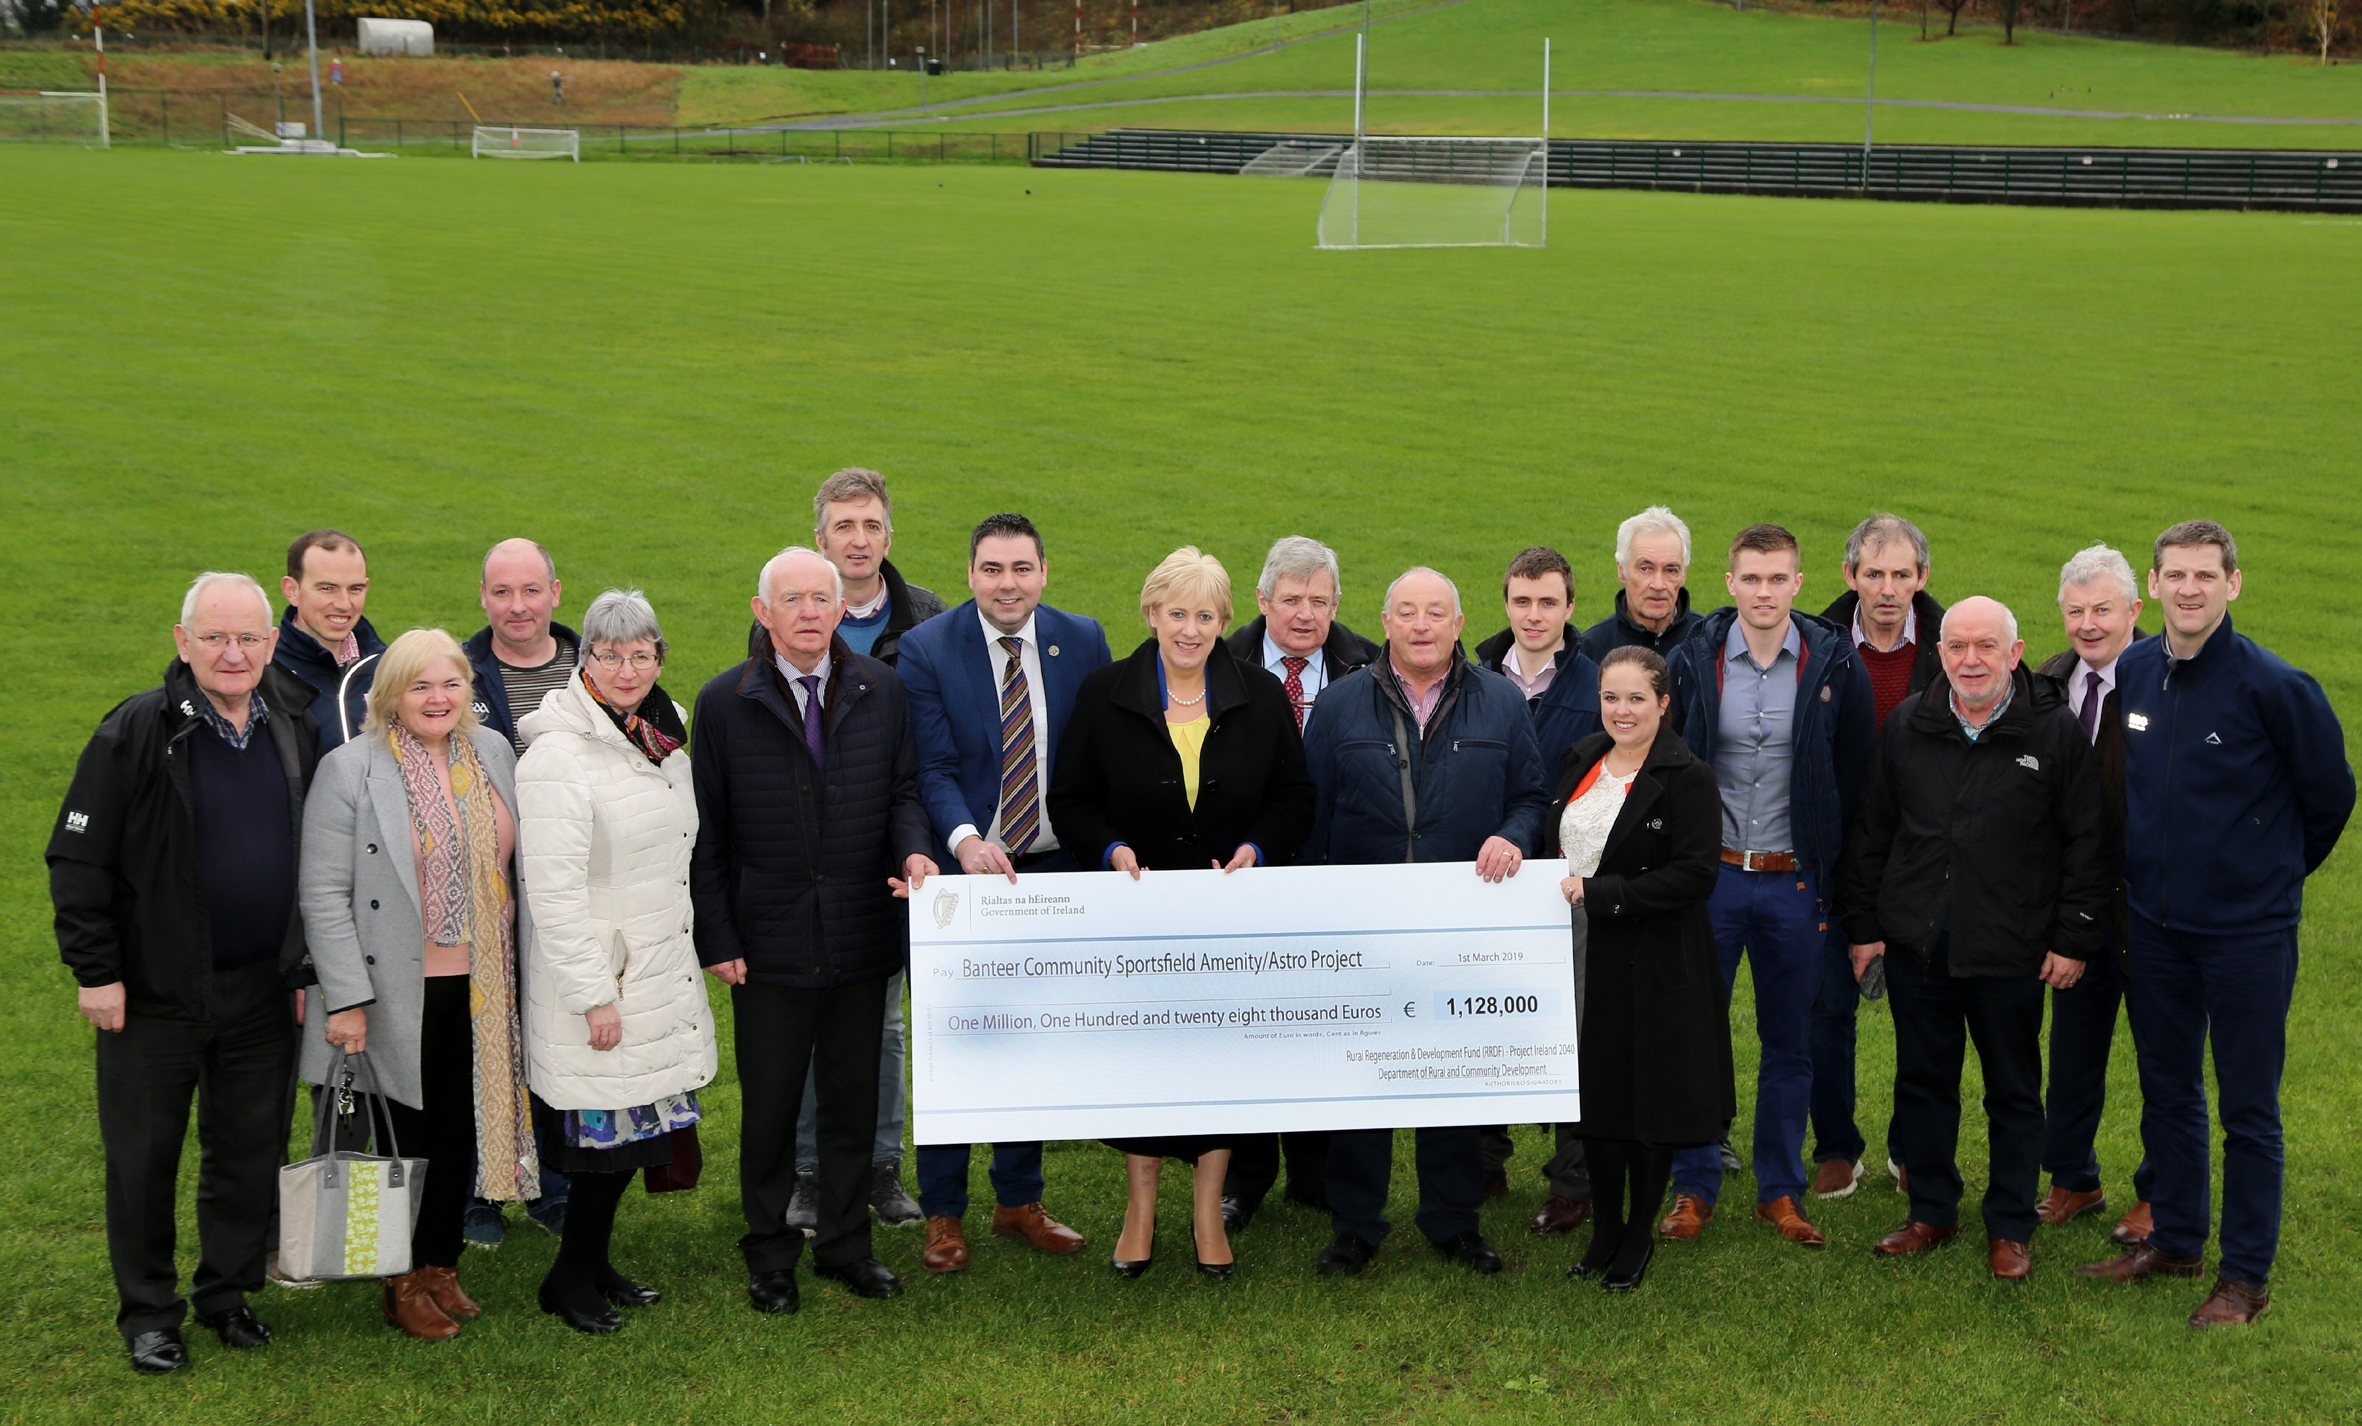 O'Shea welcomes Minister Humphreys to Banteer Community Sportsfield